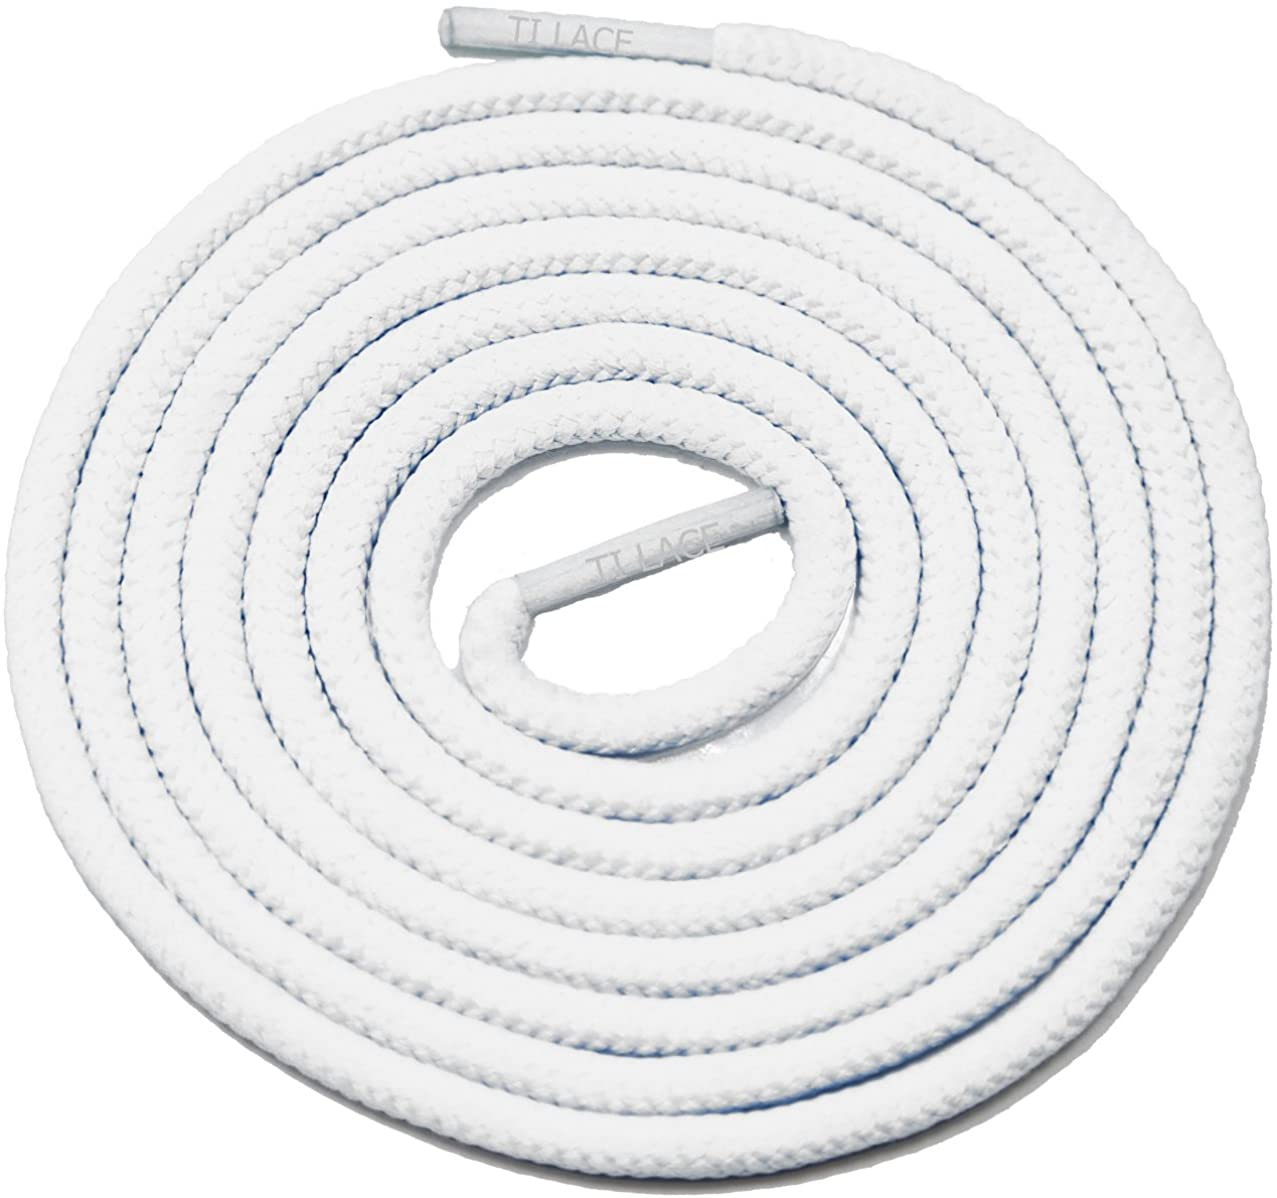 36 White 3/16 Round Thick Shoelace For All Golf Shoes